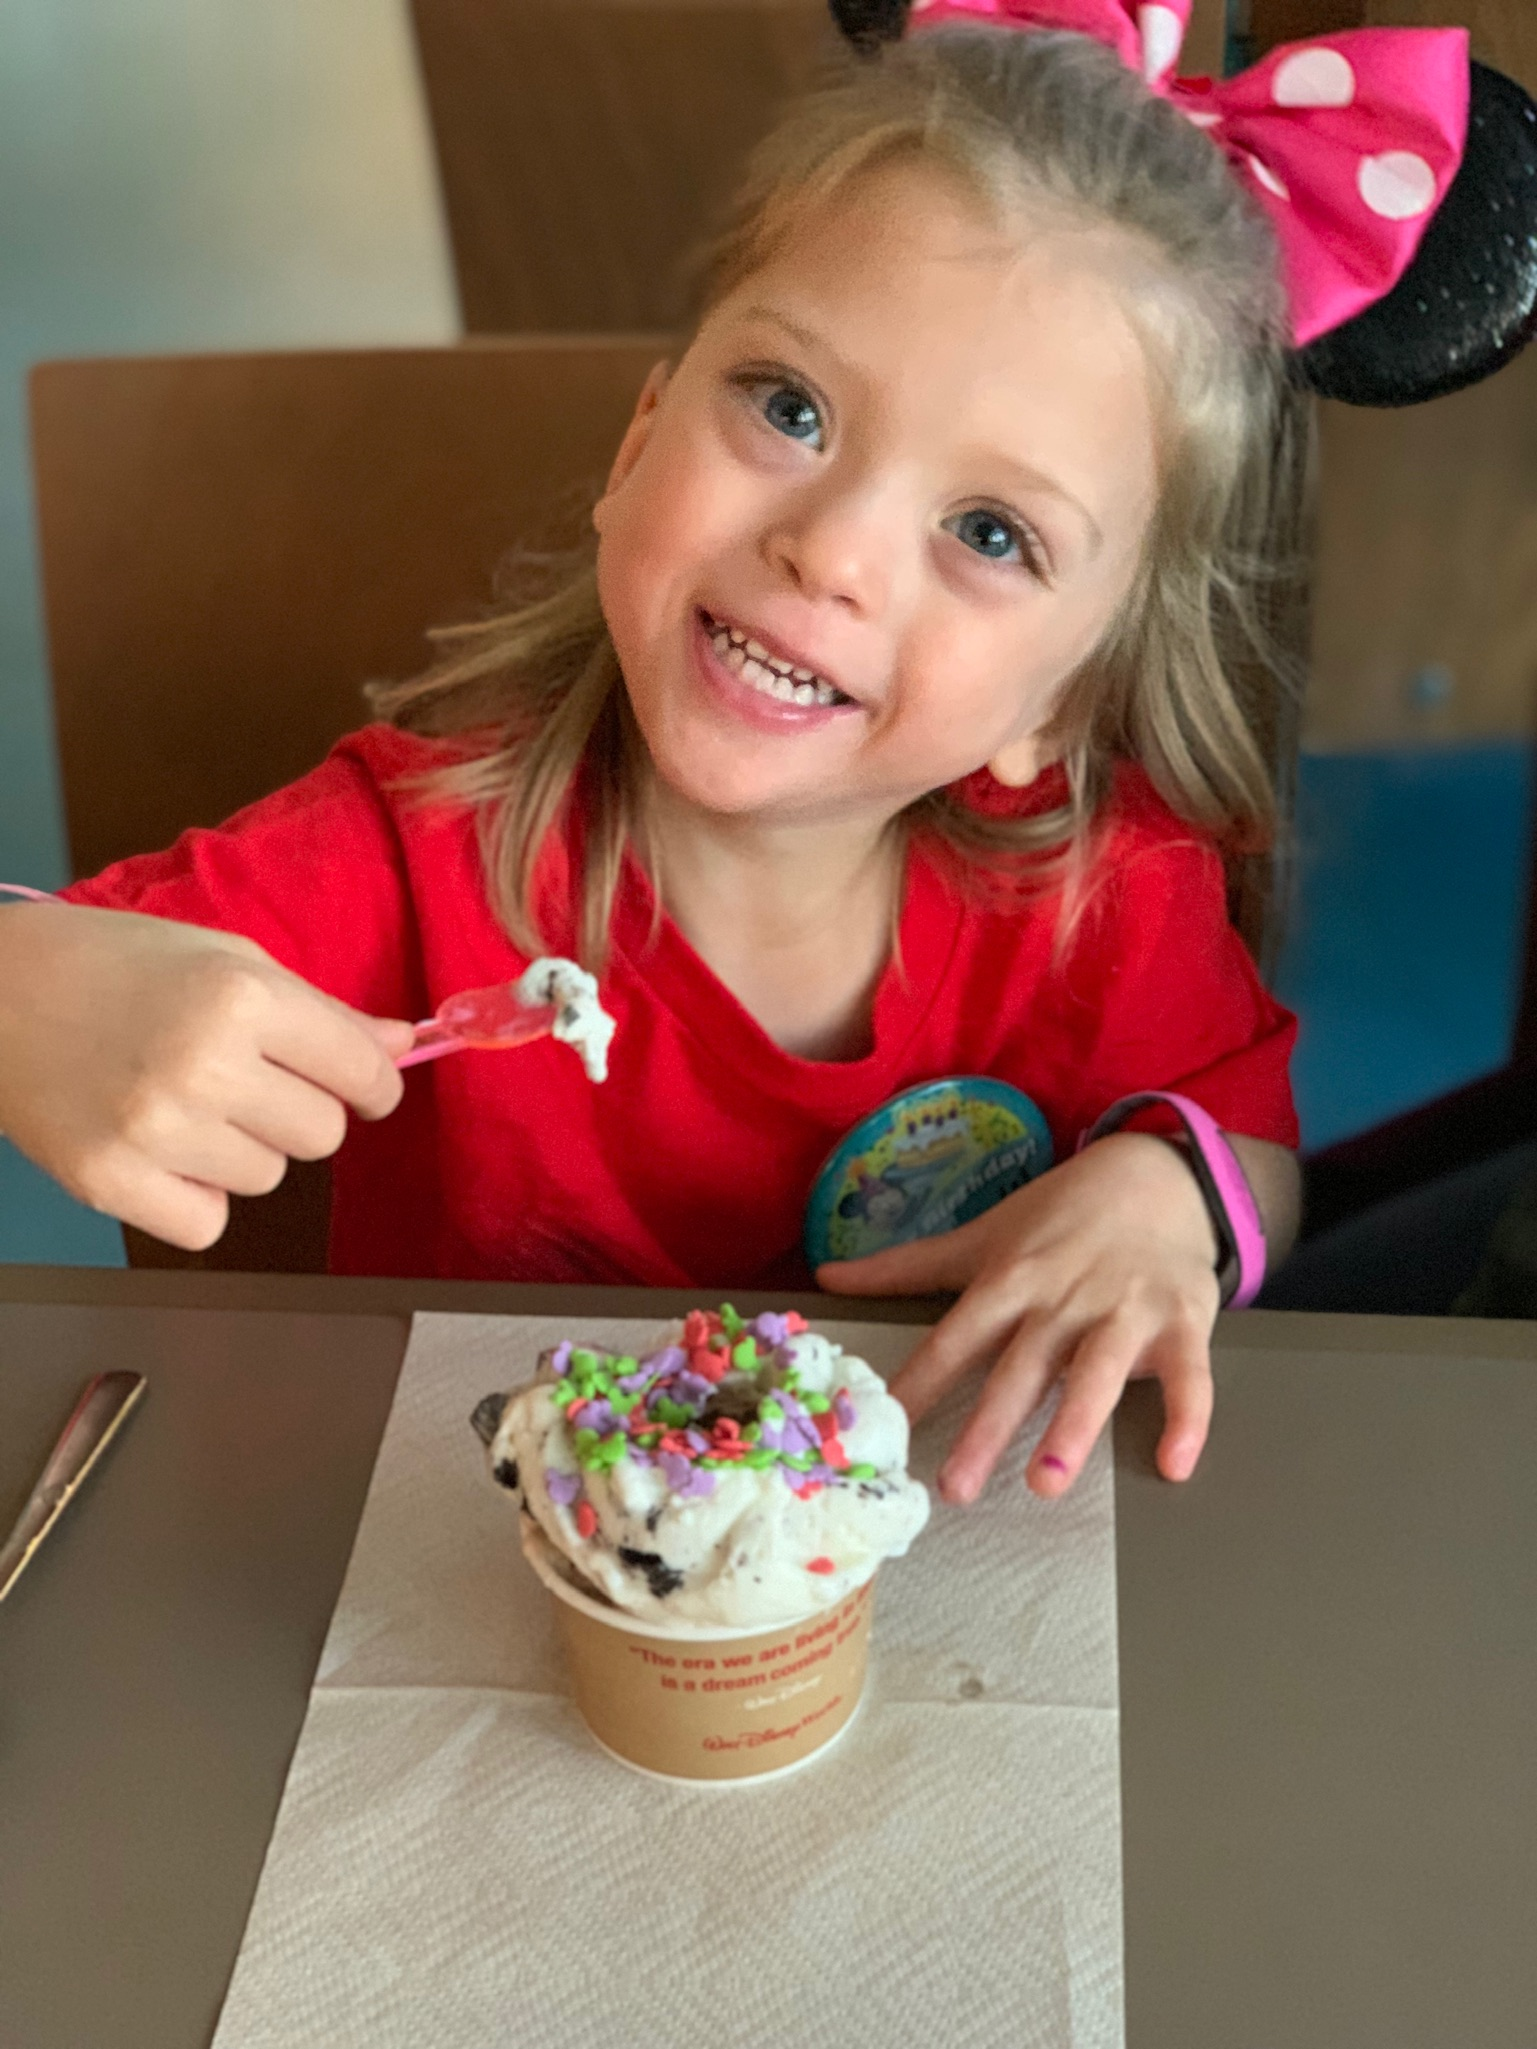 Lucie wore a button every day that said Happy Birthday and she'd get fun add ons from the Cast Members at Disney, like a pink balloon, and fun sprinkles. Sundaes at lunch? Yes, please!